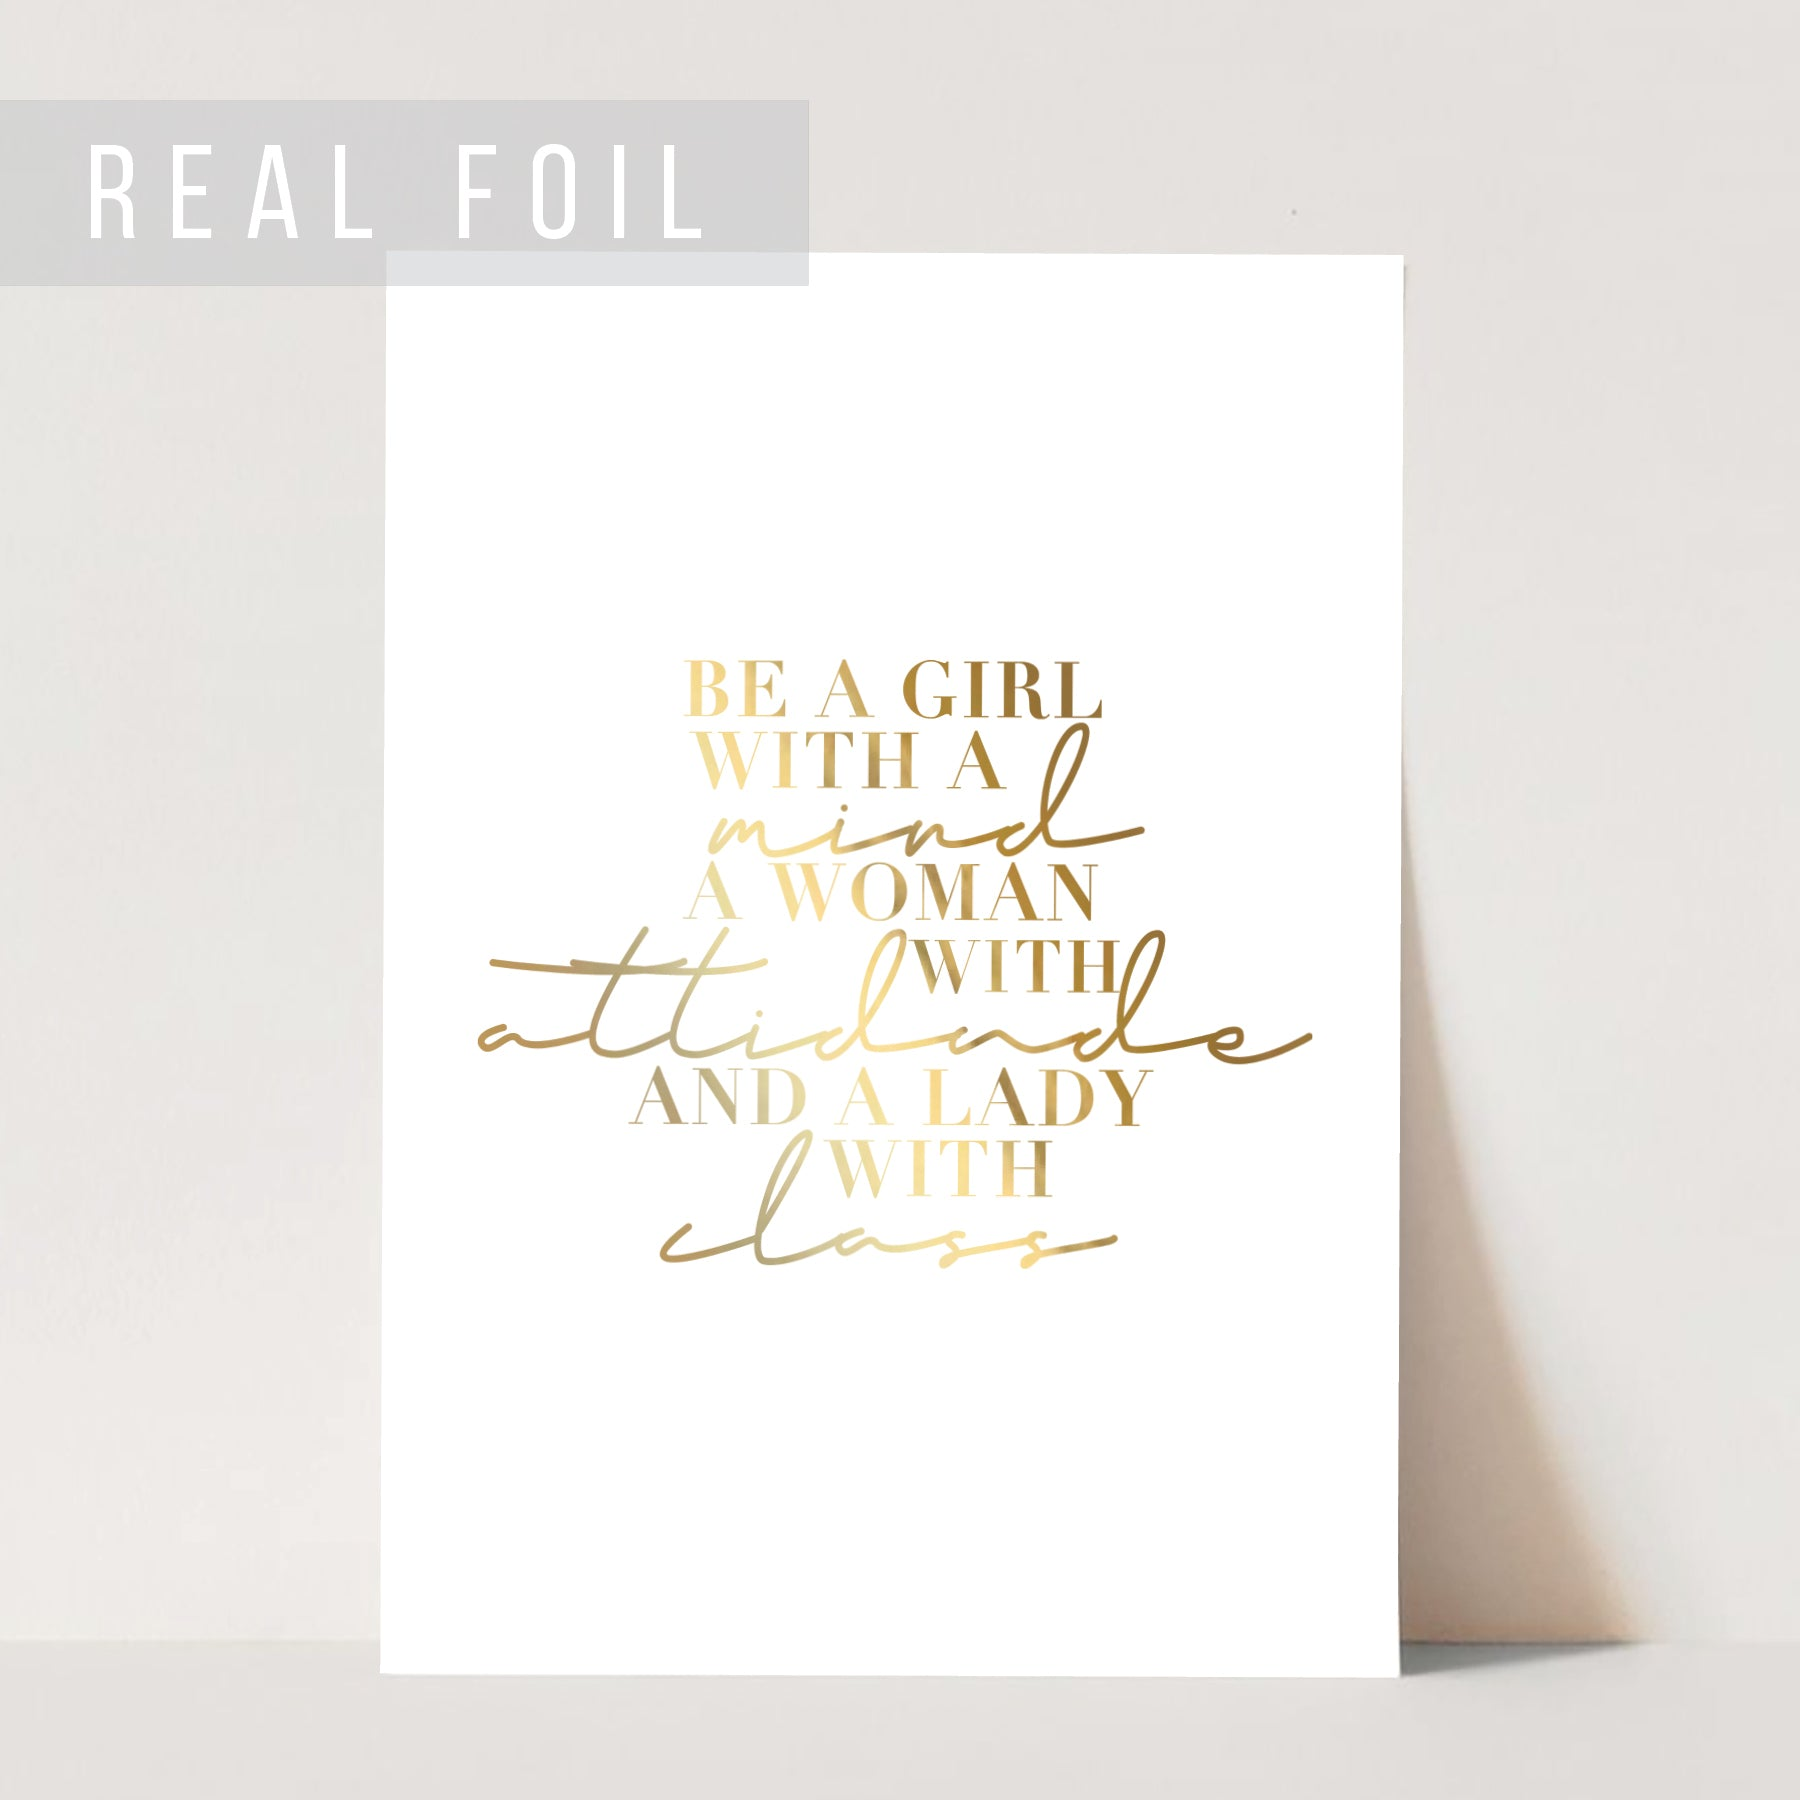 Be A Girl with A Mind, A Woman with Attitude, and A Lady with Class Foiled Art Print